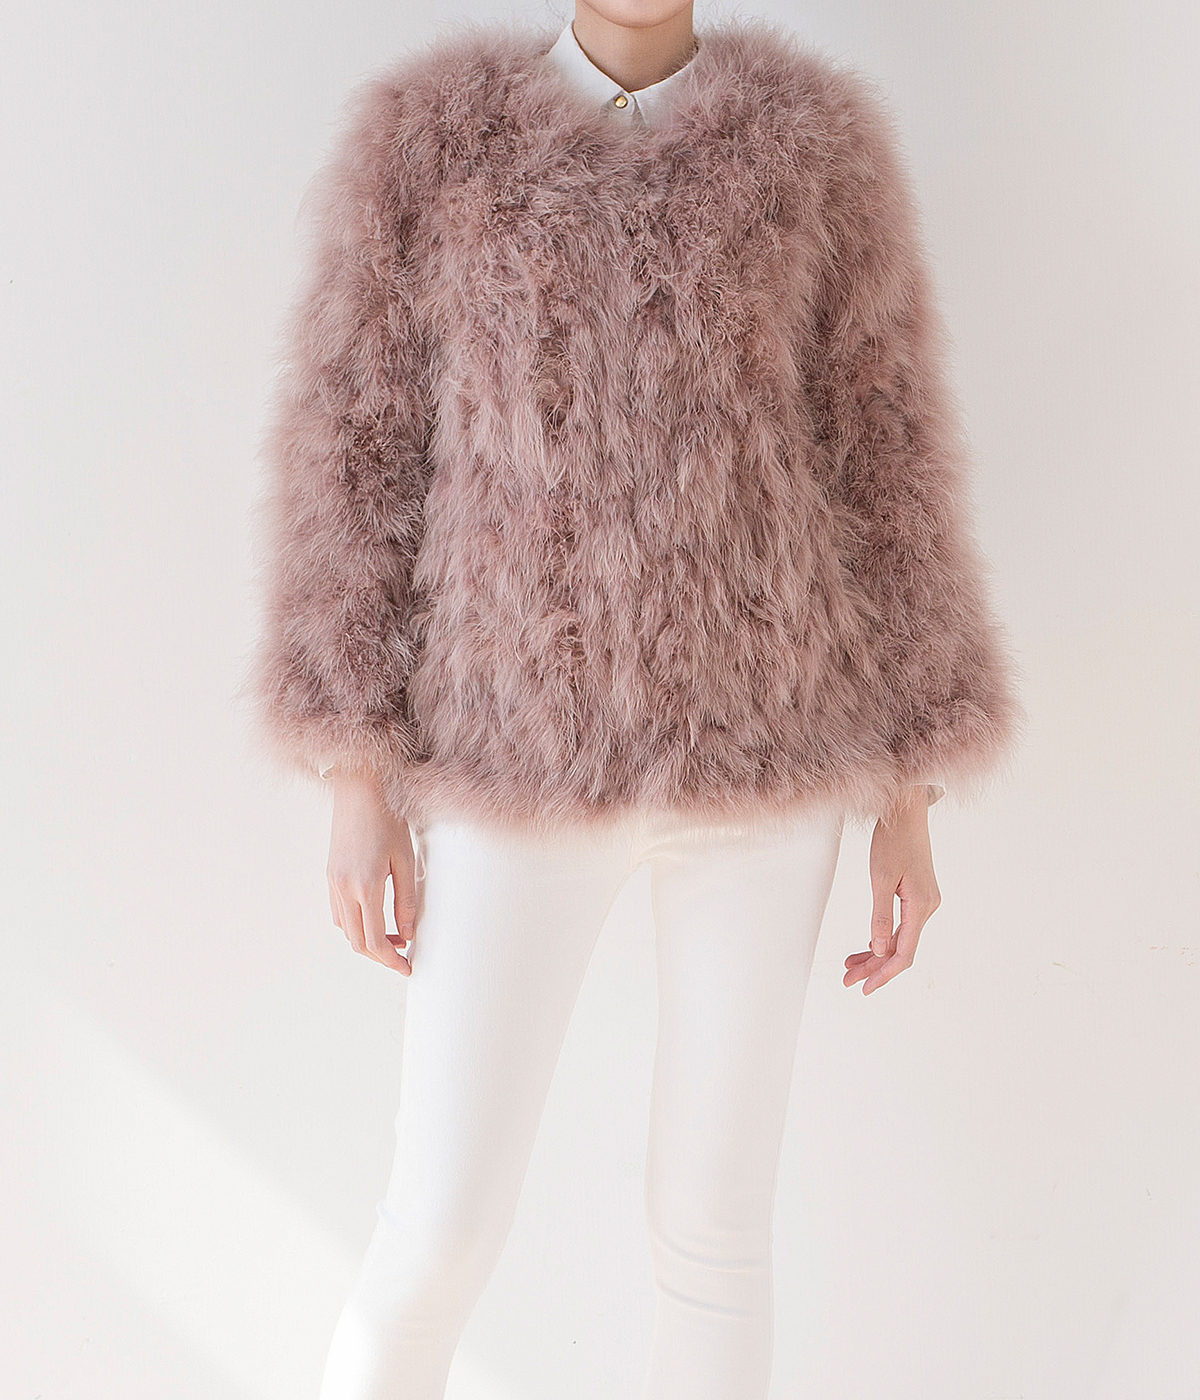 Fluffy Fur Fever Jacket Long Version Coral Pink - Pellobello